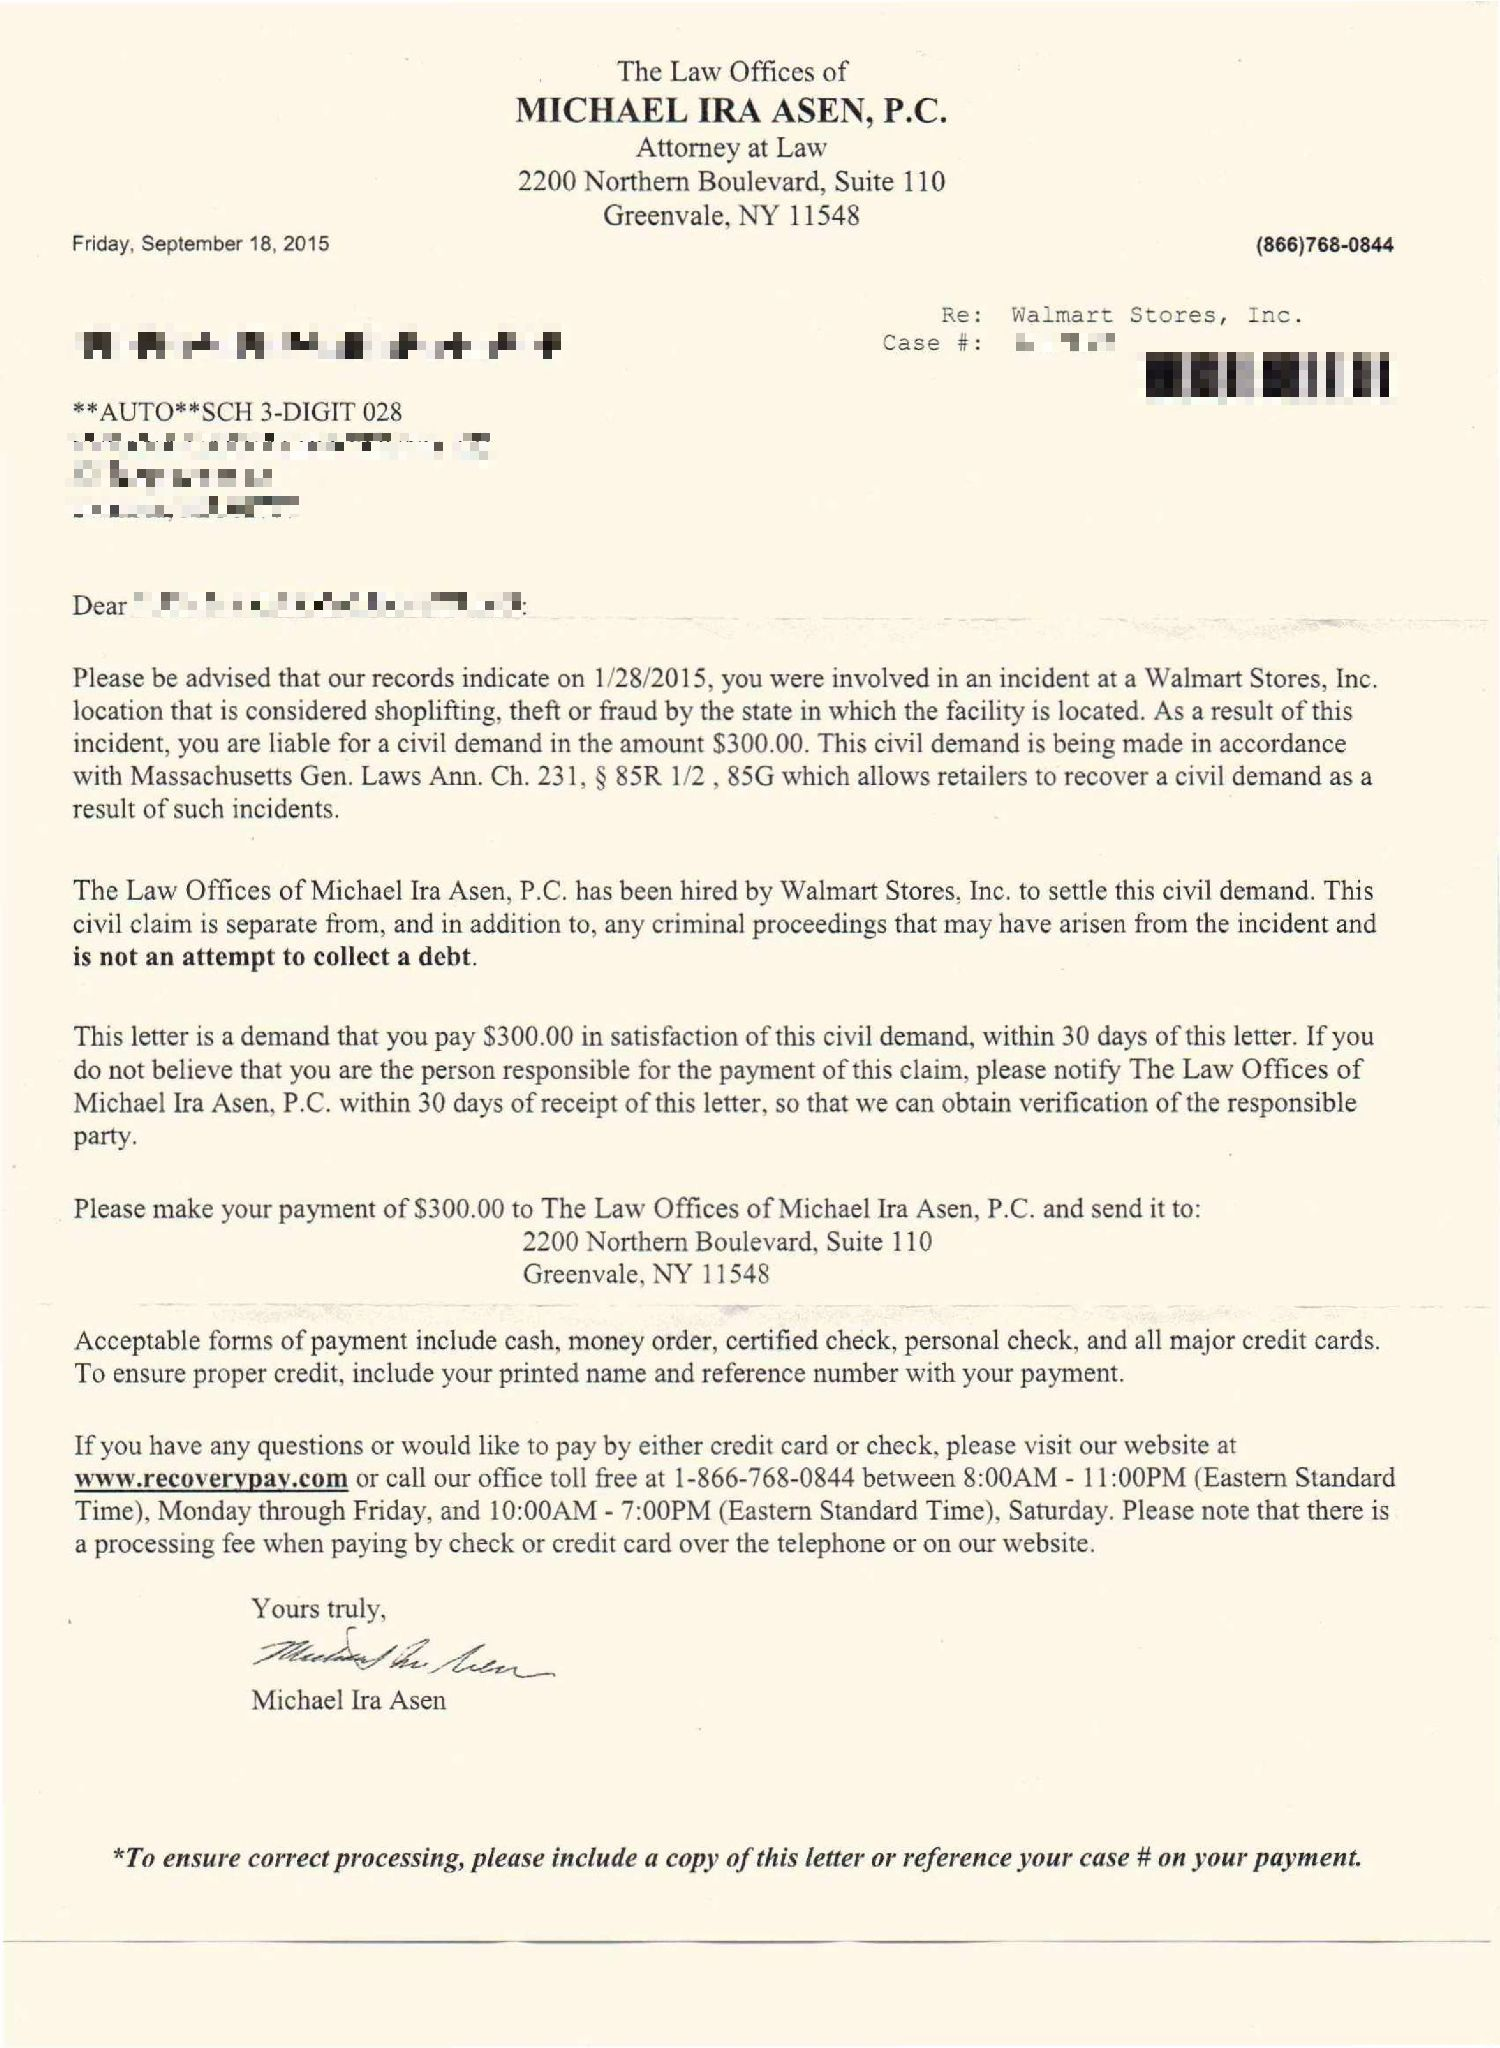 walmart shoplifting civil demand letter from the law offices of michael ira asen pc